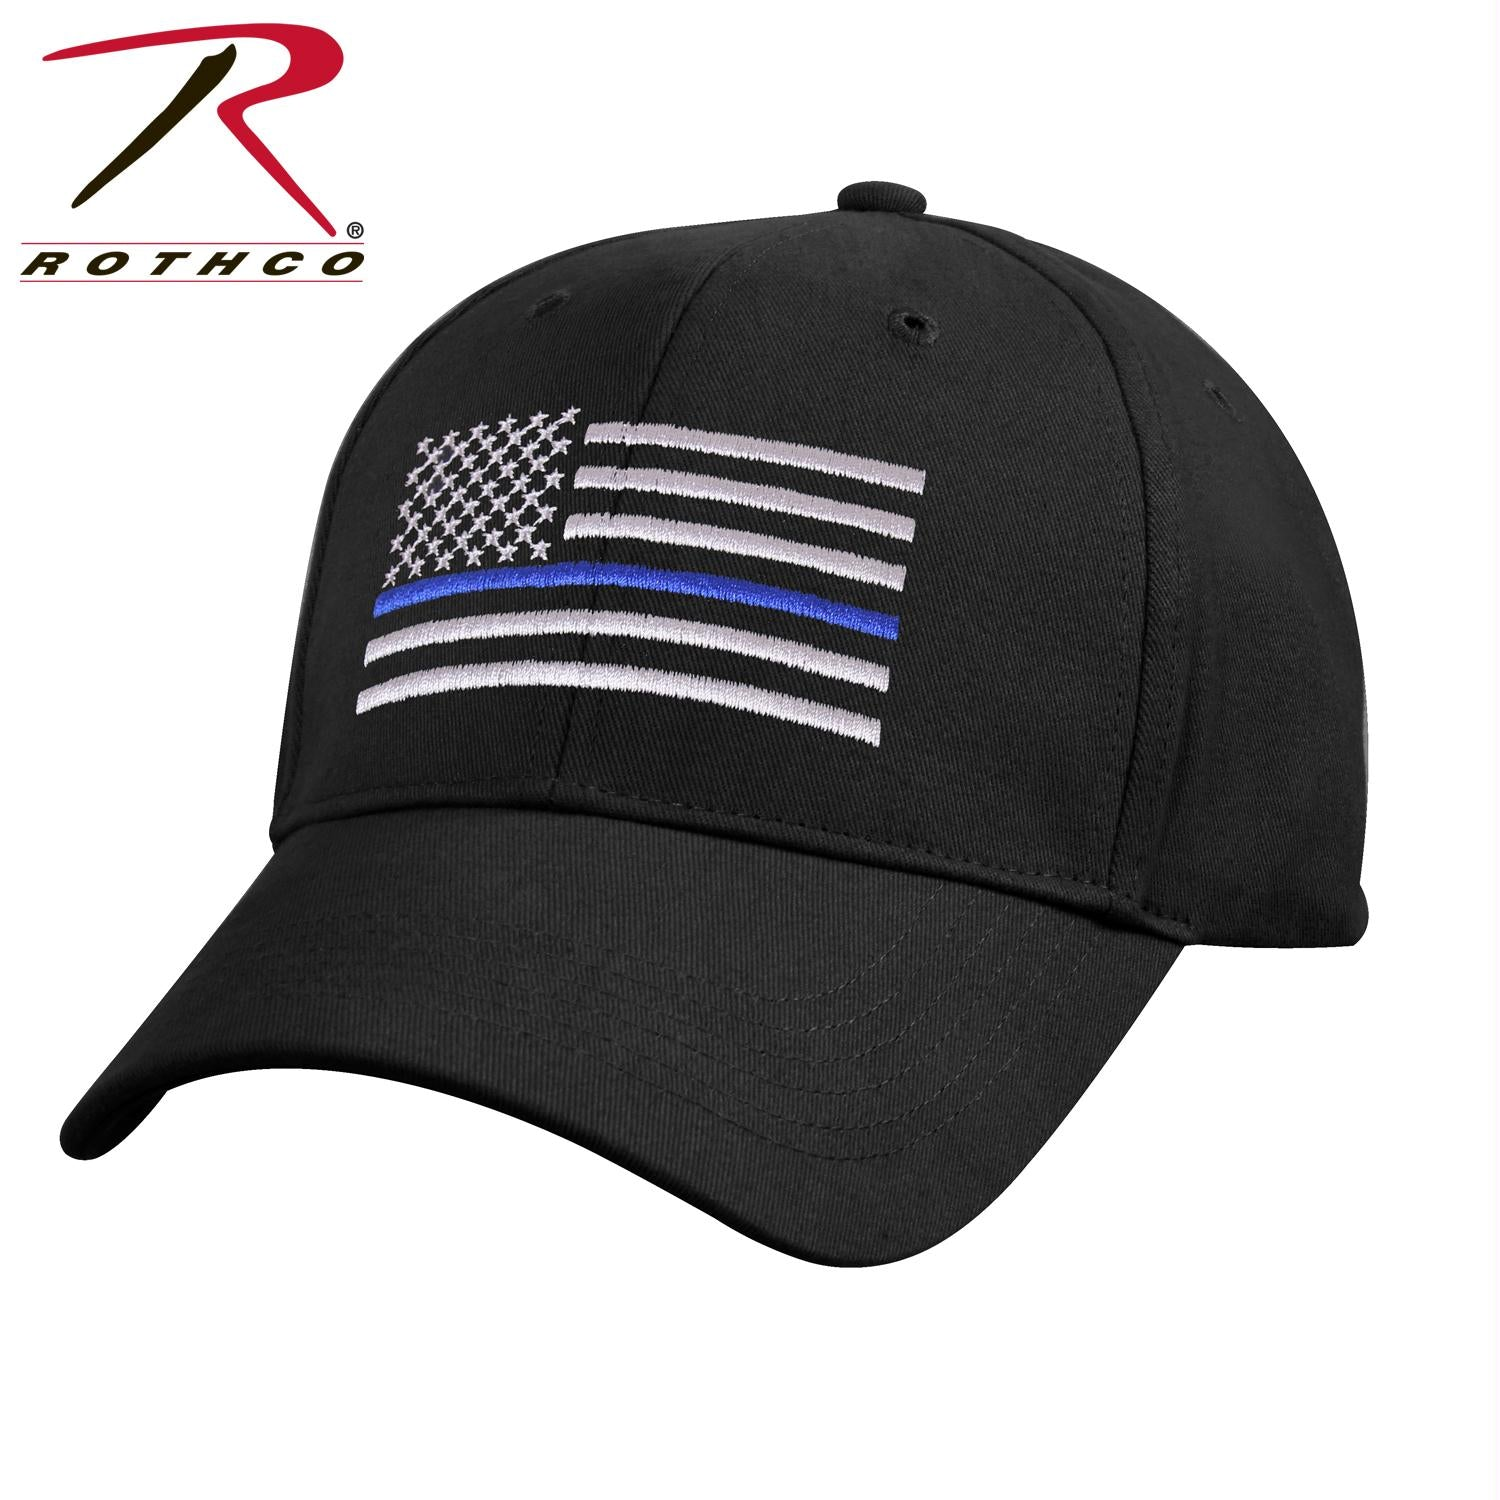 Rothco Kids Low Profile Thin Blue Line Flag Cap - Black / One Size